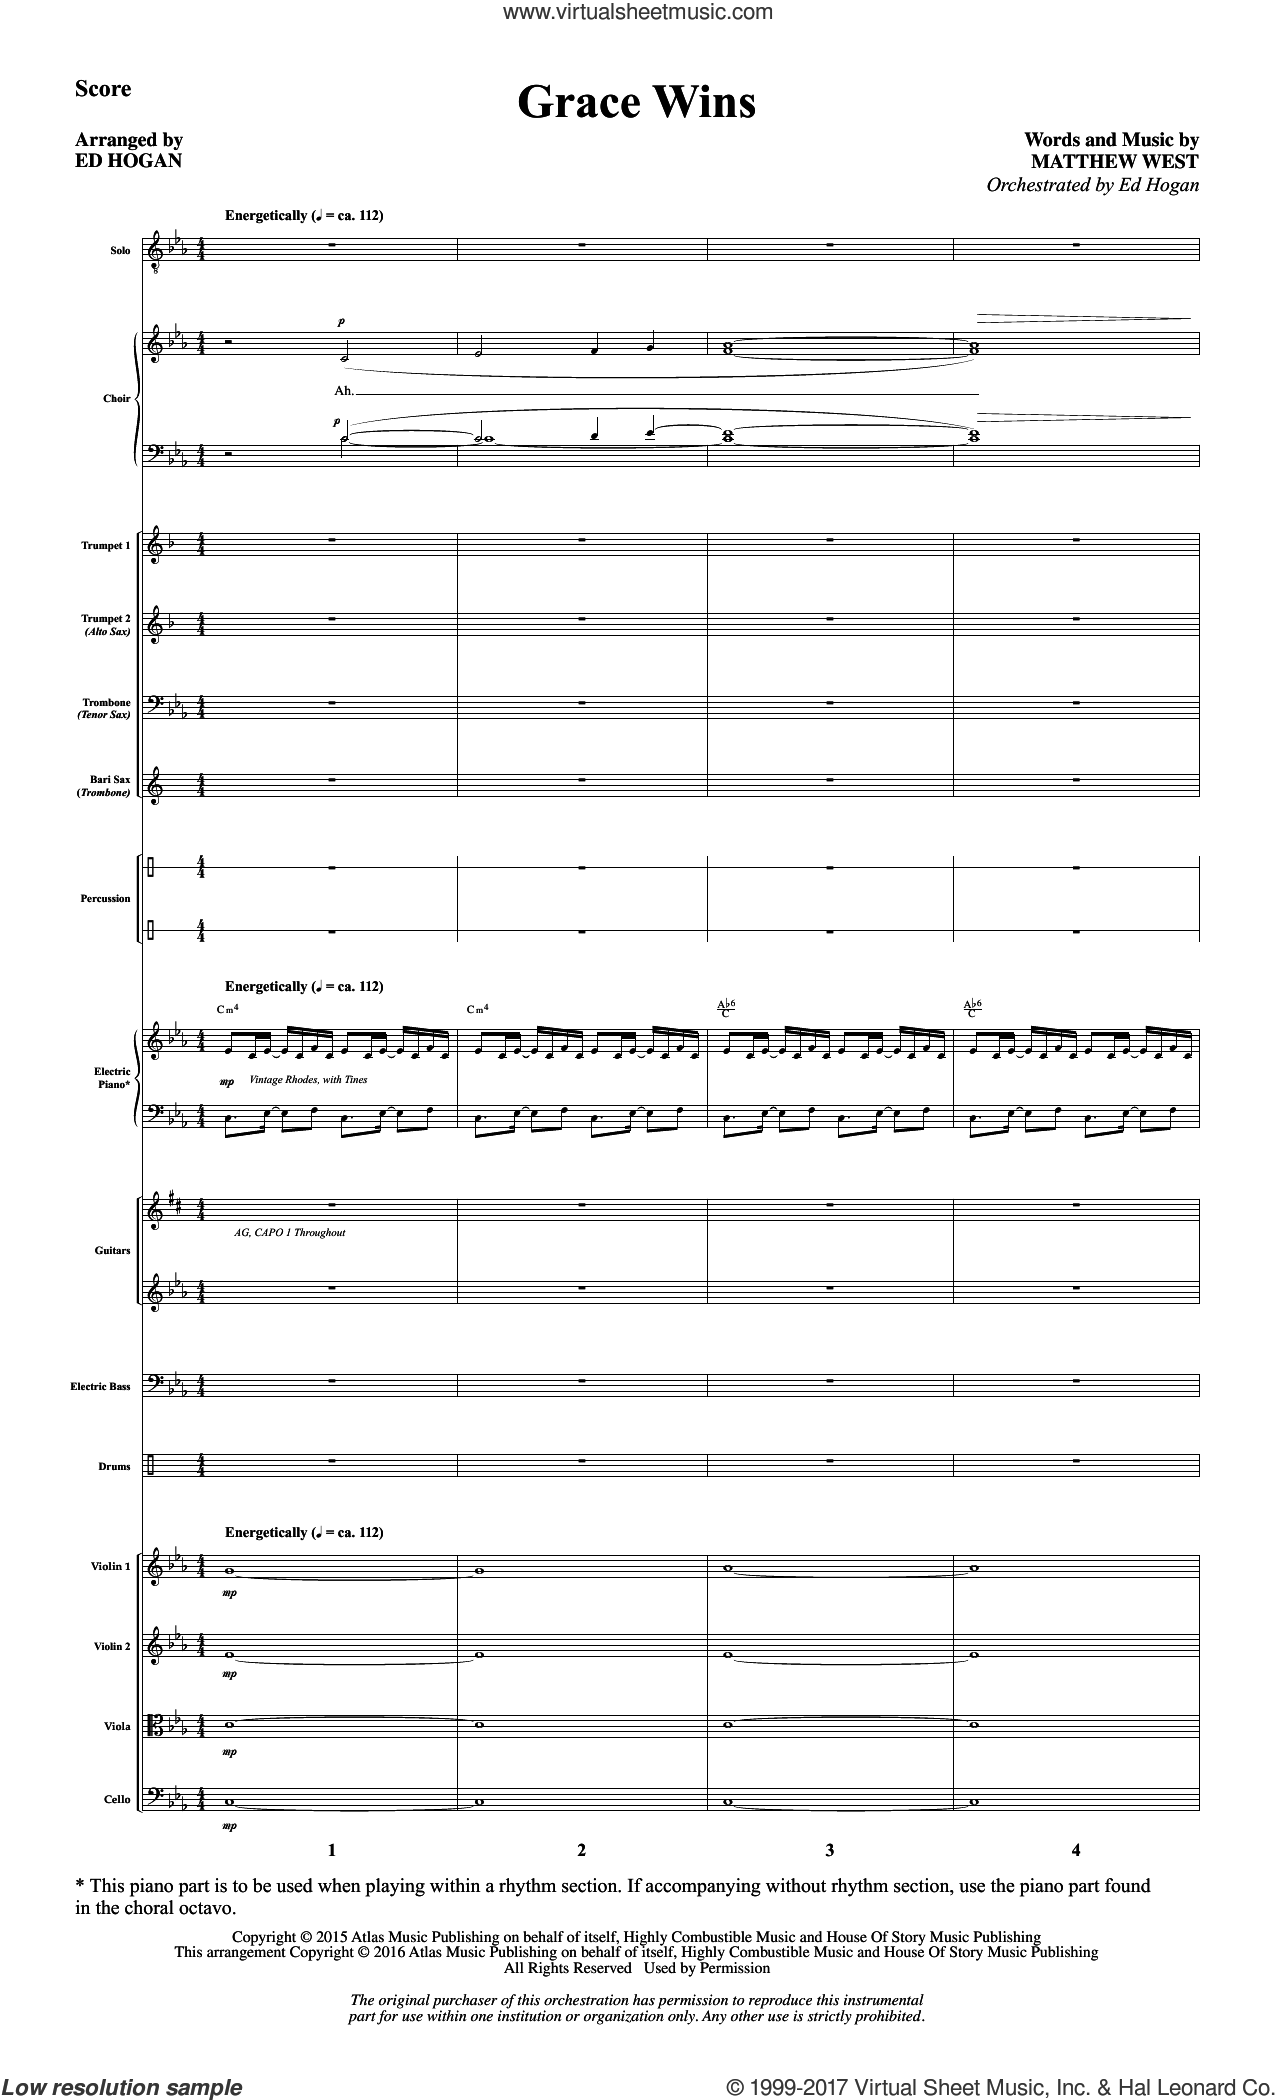 Grace Wins (COMPLETE) sheet music for orchestra/band by Ed Hogan and Matthew West, intermediate skill level